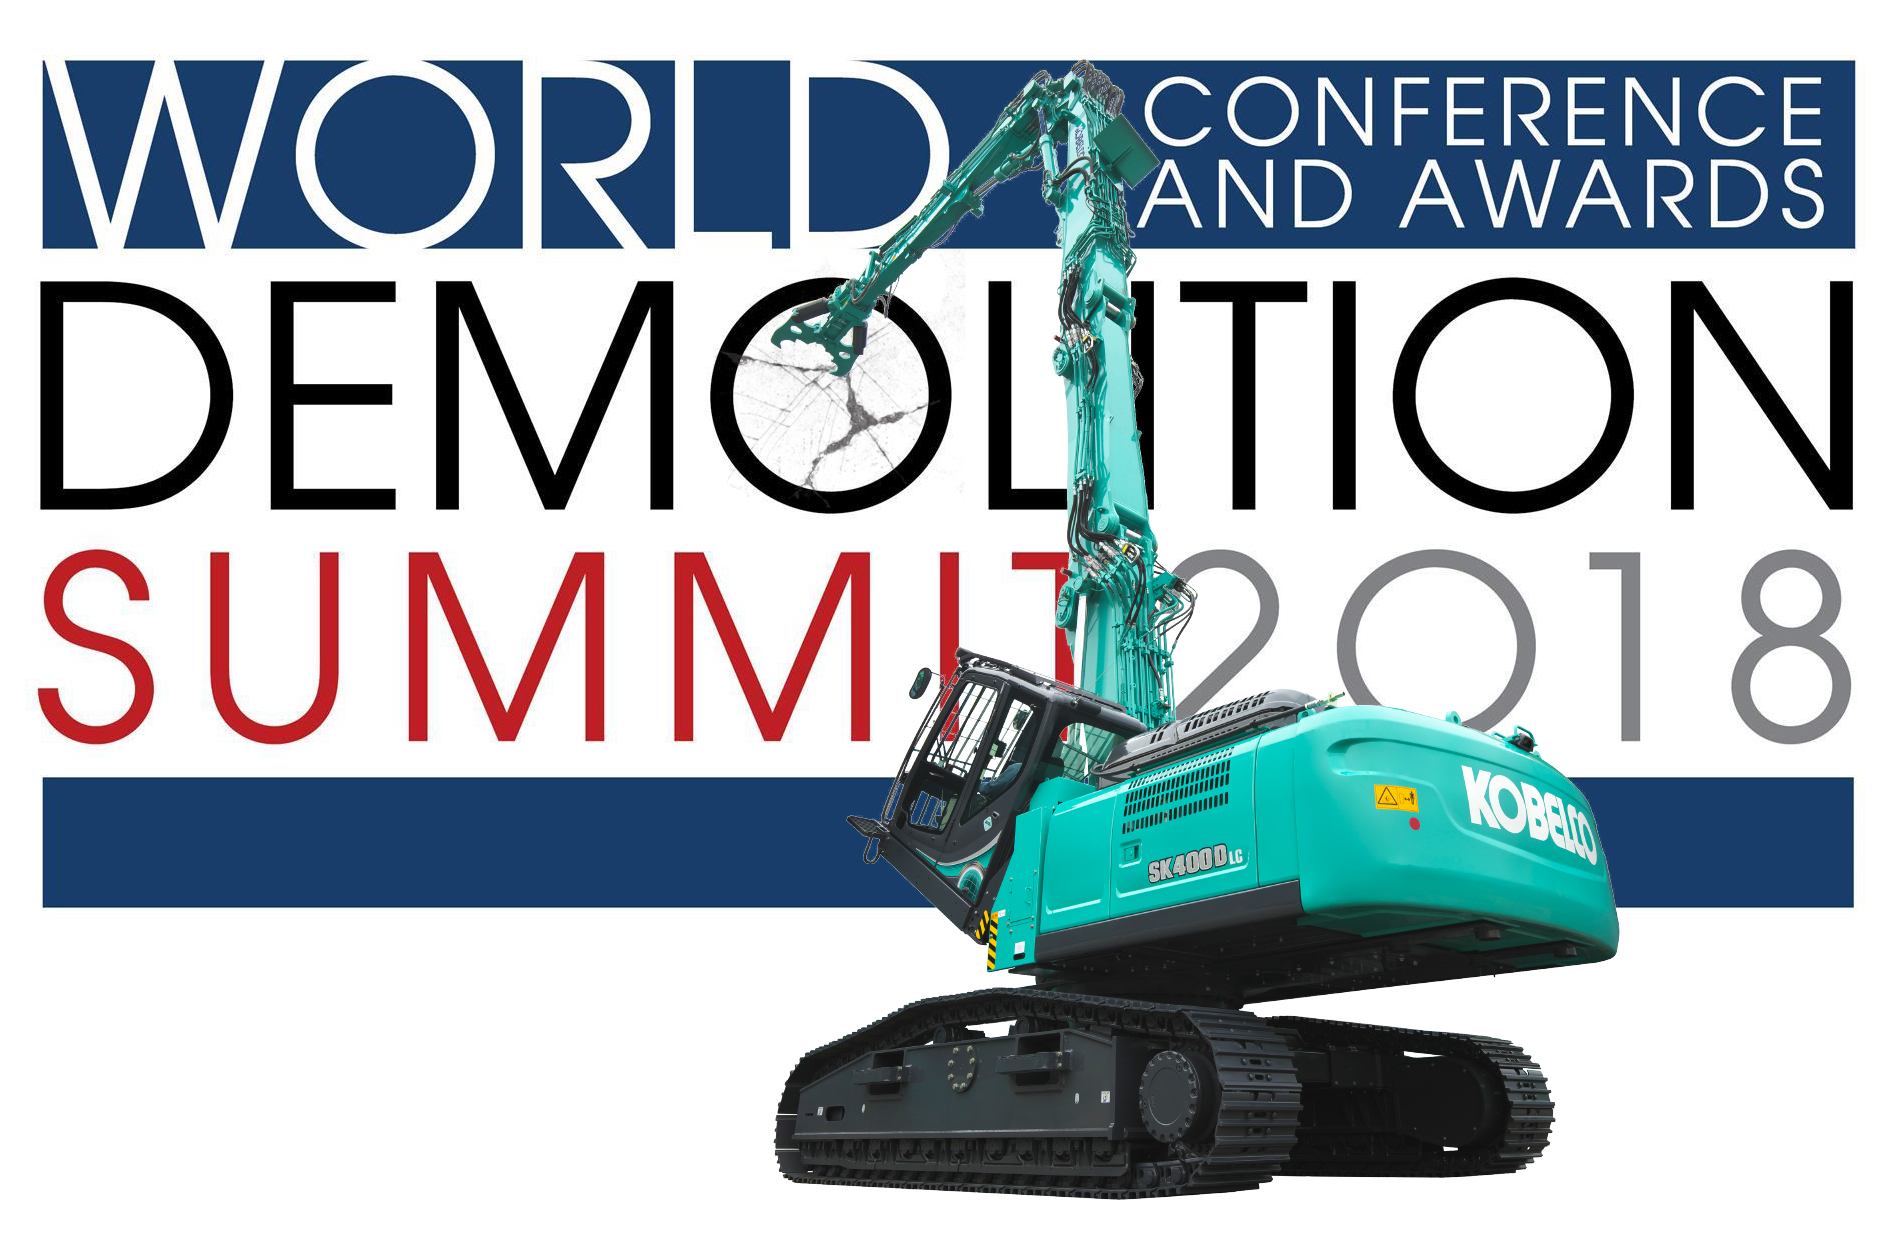 Kobelco attending World Demolition Summit as a Bronze Sponsor for the second time